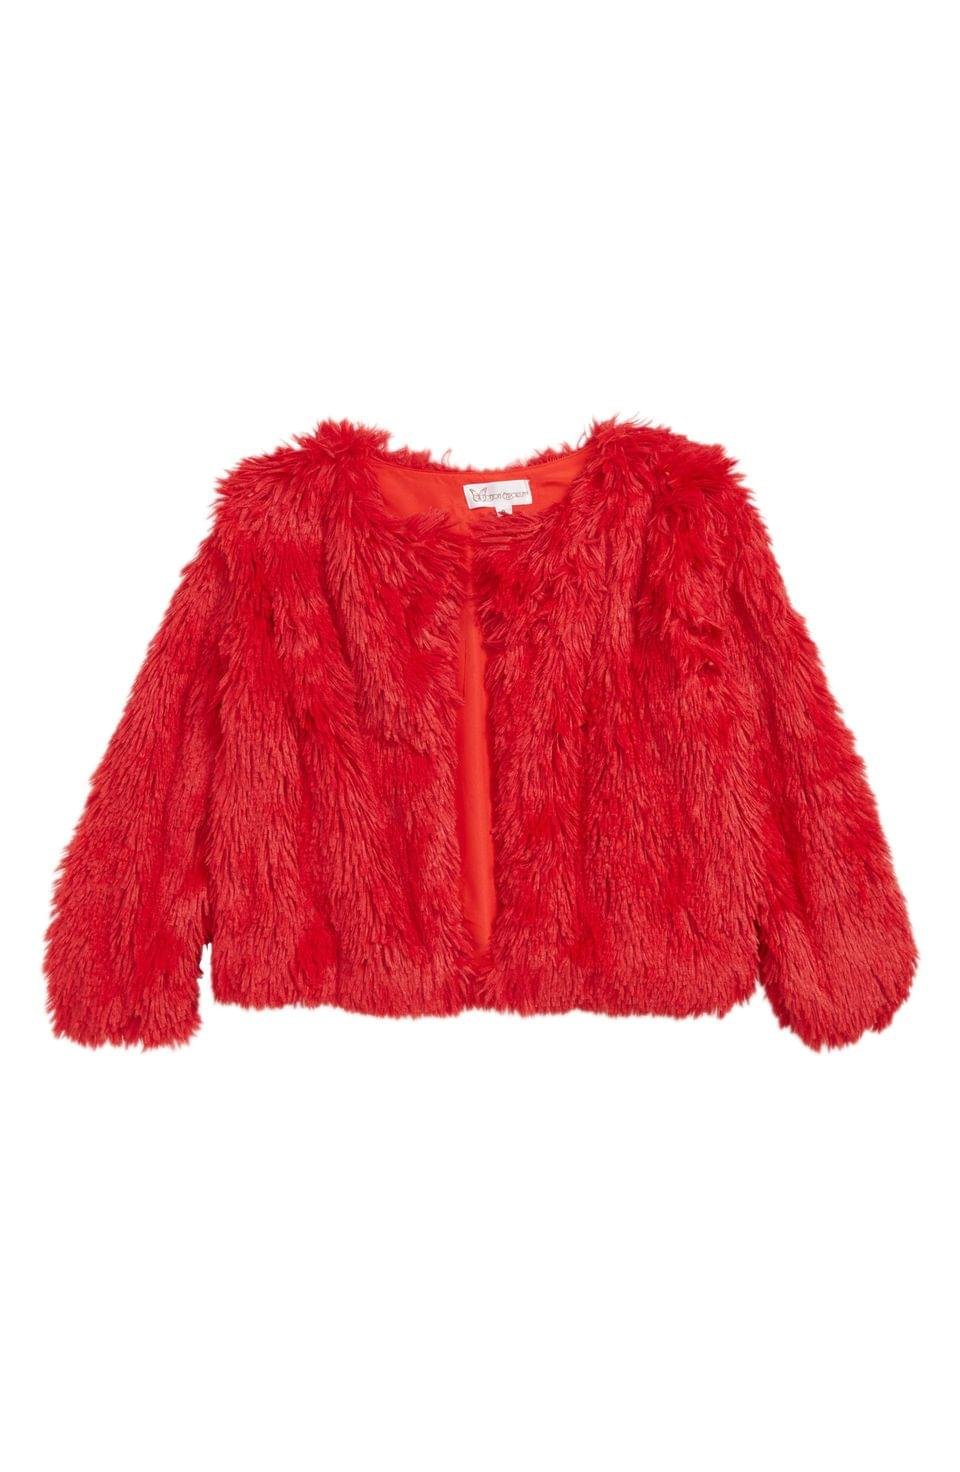 Girls's Cotton Emporium Faux Fur Jacket (Big Girls)